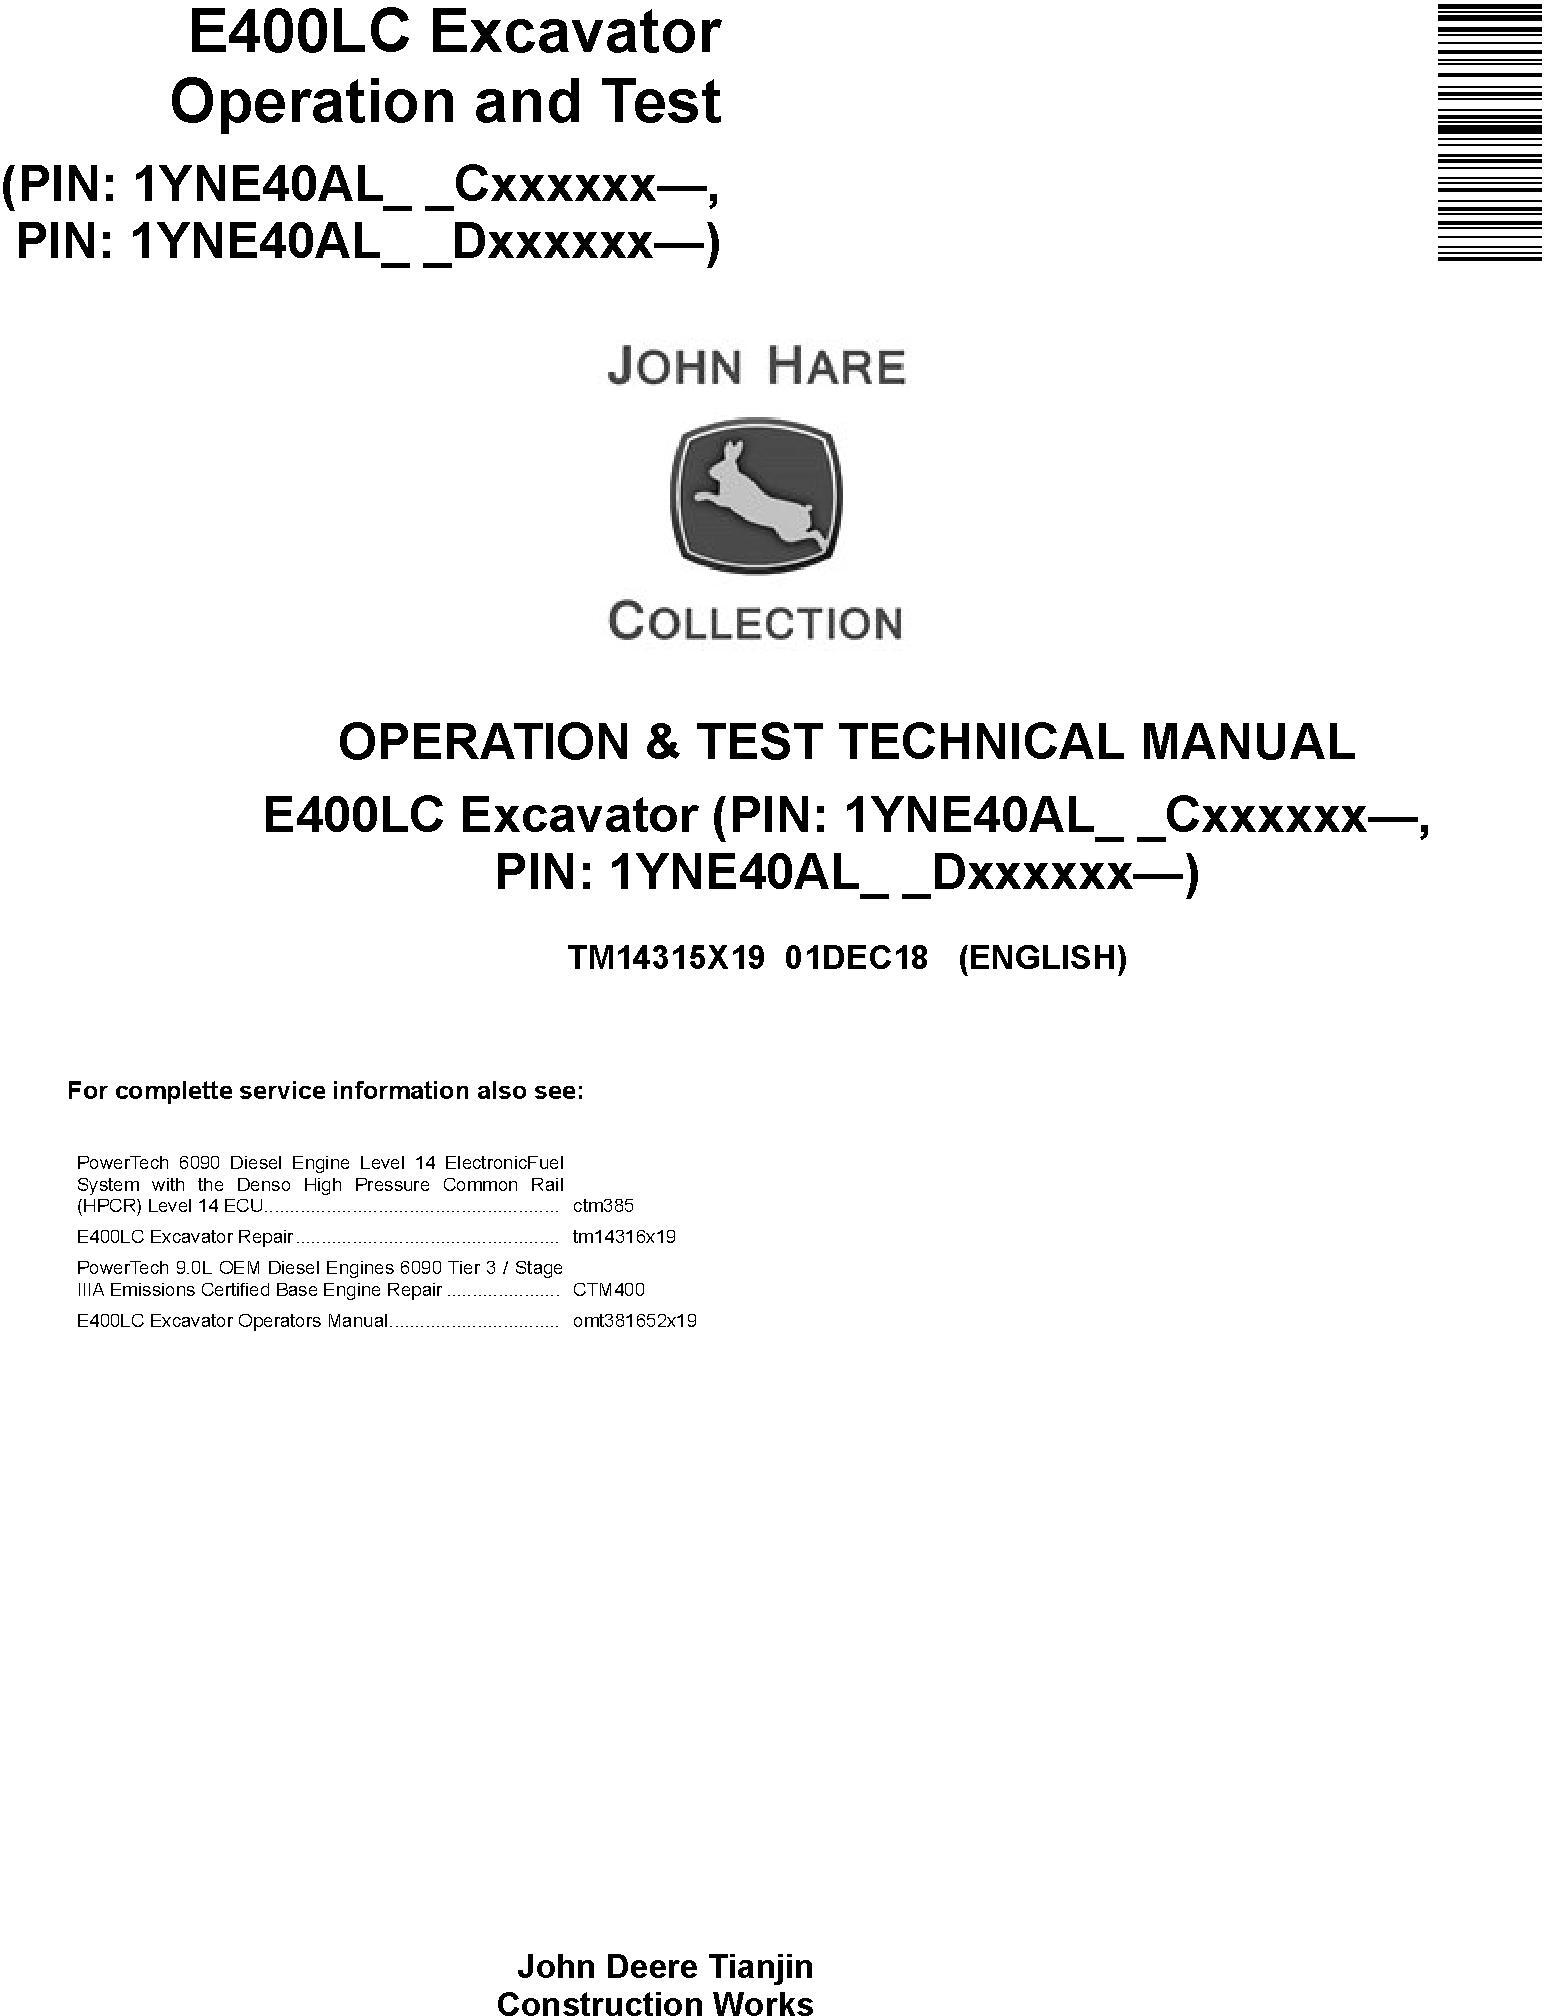 John Deere E400LC (SN.from C000001,D000001) Excavator Operation & Test Technical Manual (TM14315X19) - 19160